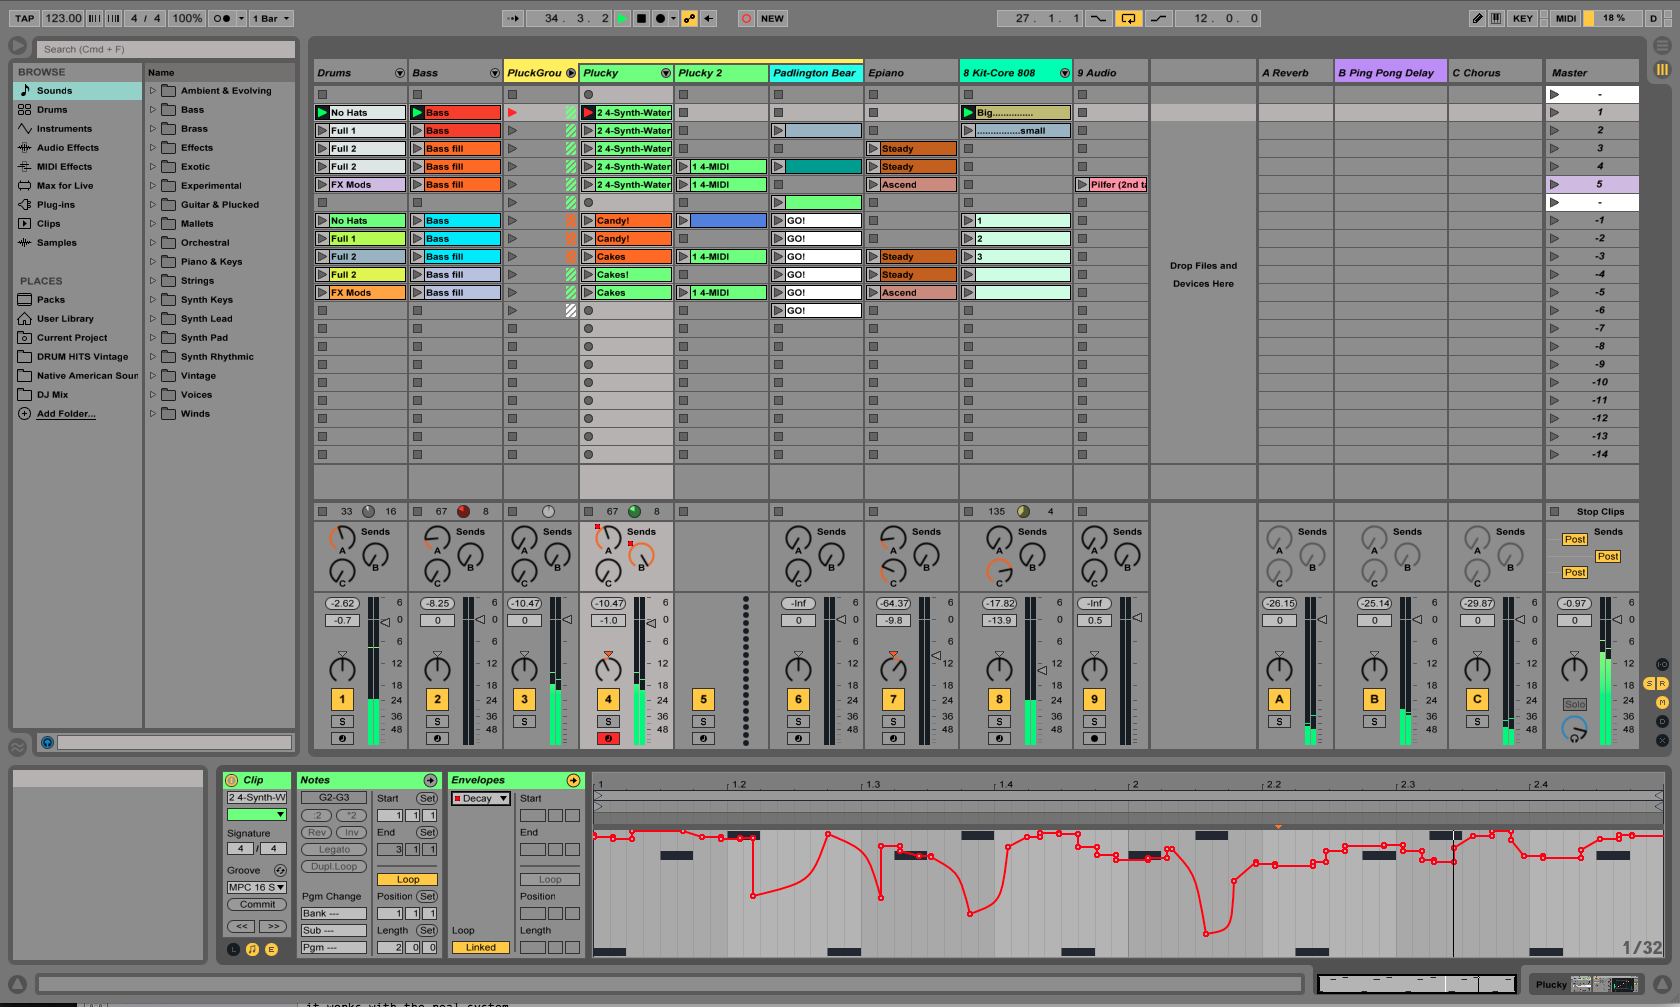 ableton live 9 not playing